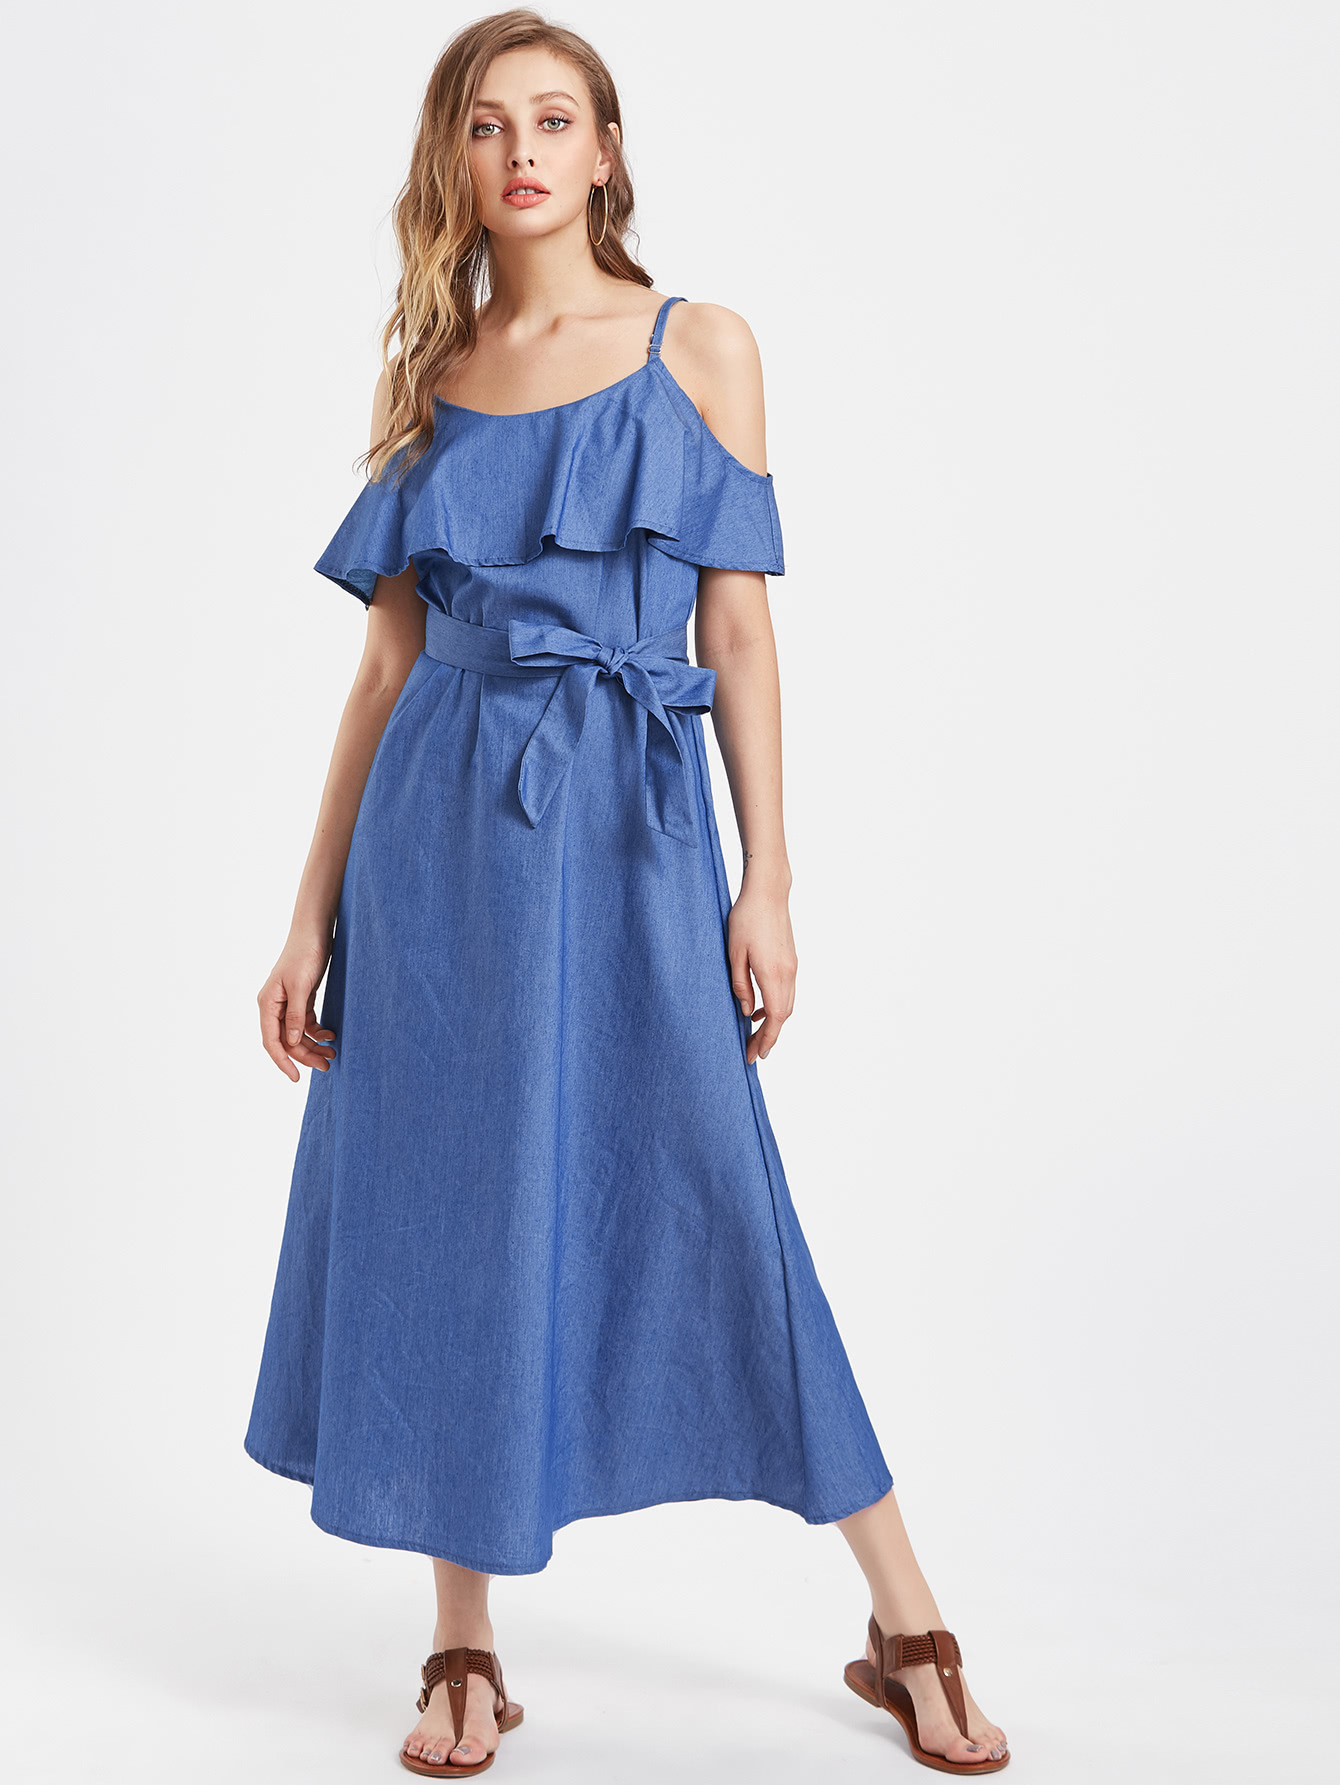 CUERLY Sexy cold shoulder denim blue plus size dress women Summer sashes ruffle jeans dresses Casual solid fashion vestidos in Dresses from Women 39 s Clothing